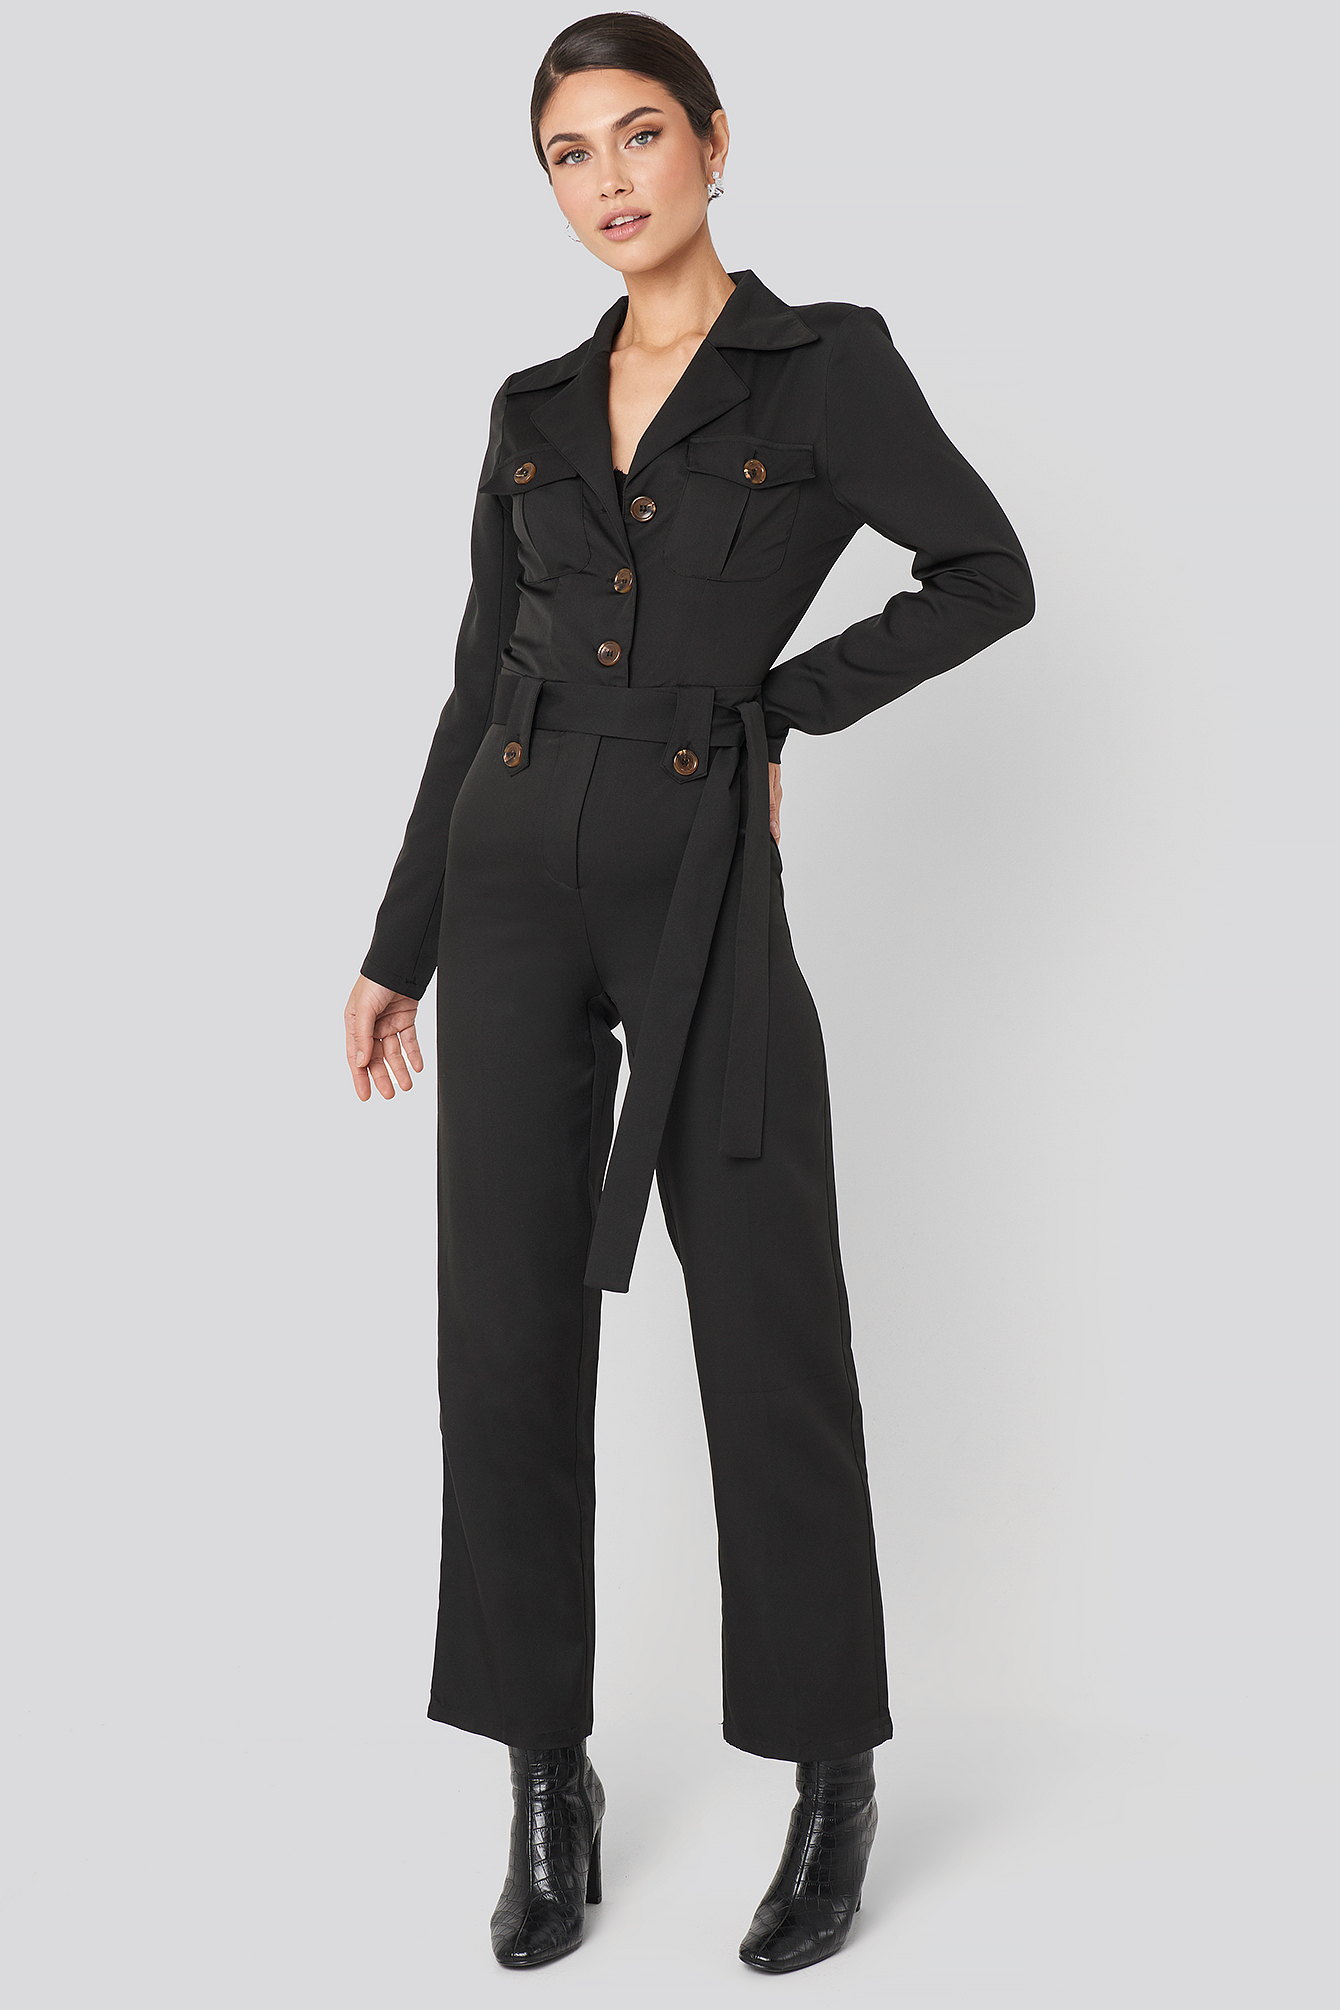 Front Pocket Tied Waist Jumpsuit Noir by Na Kd Trend